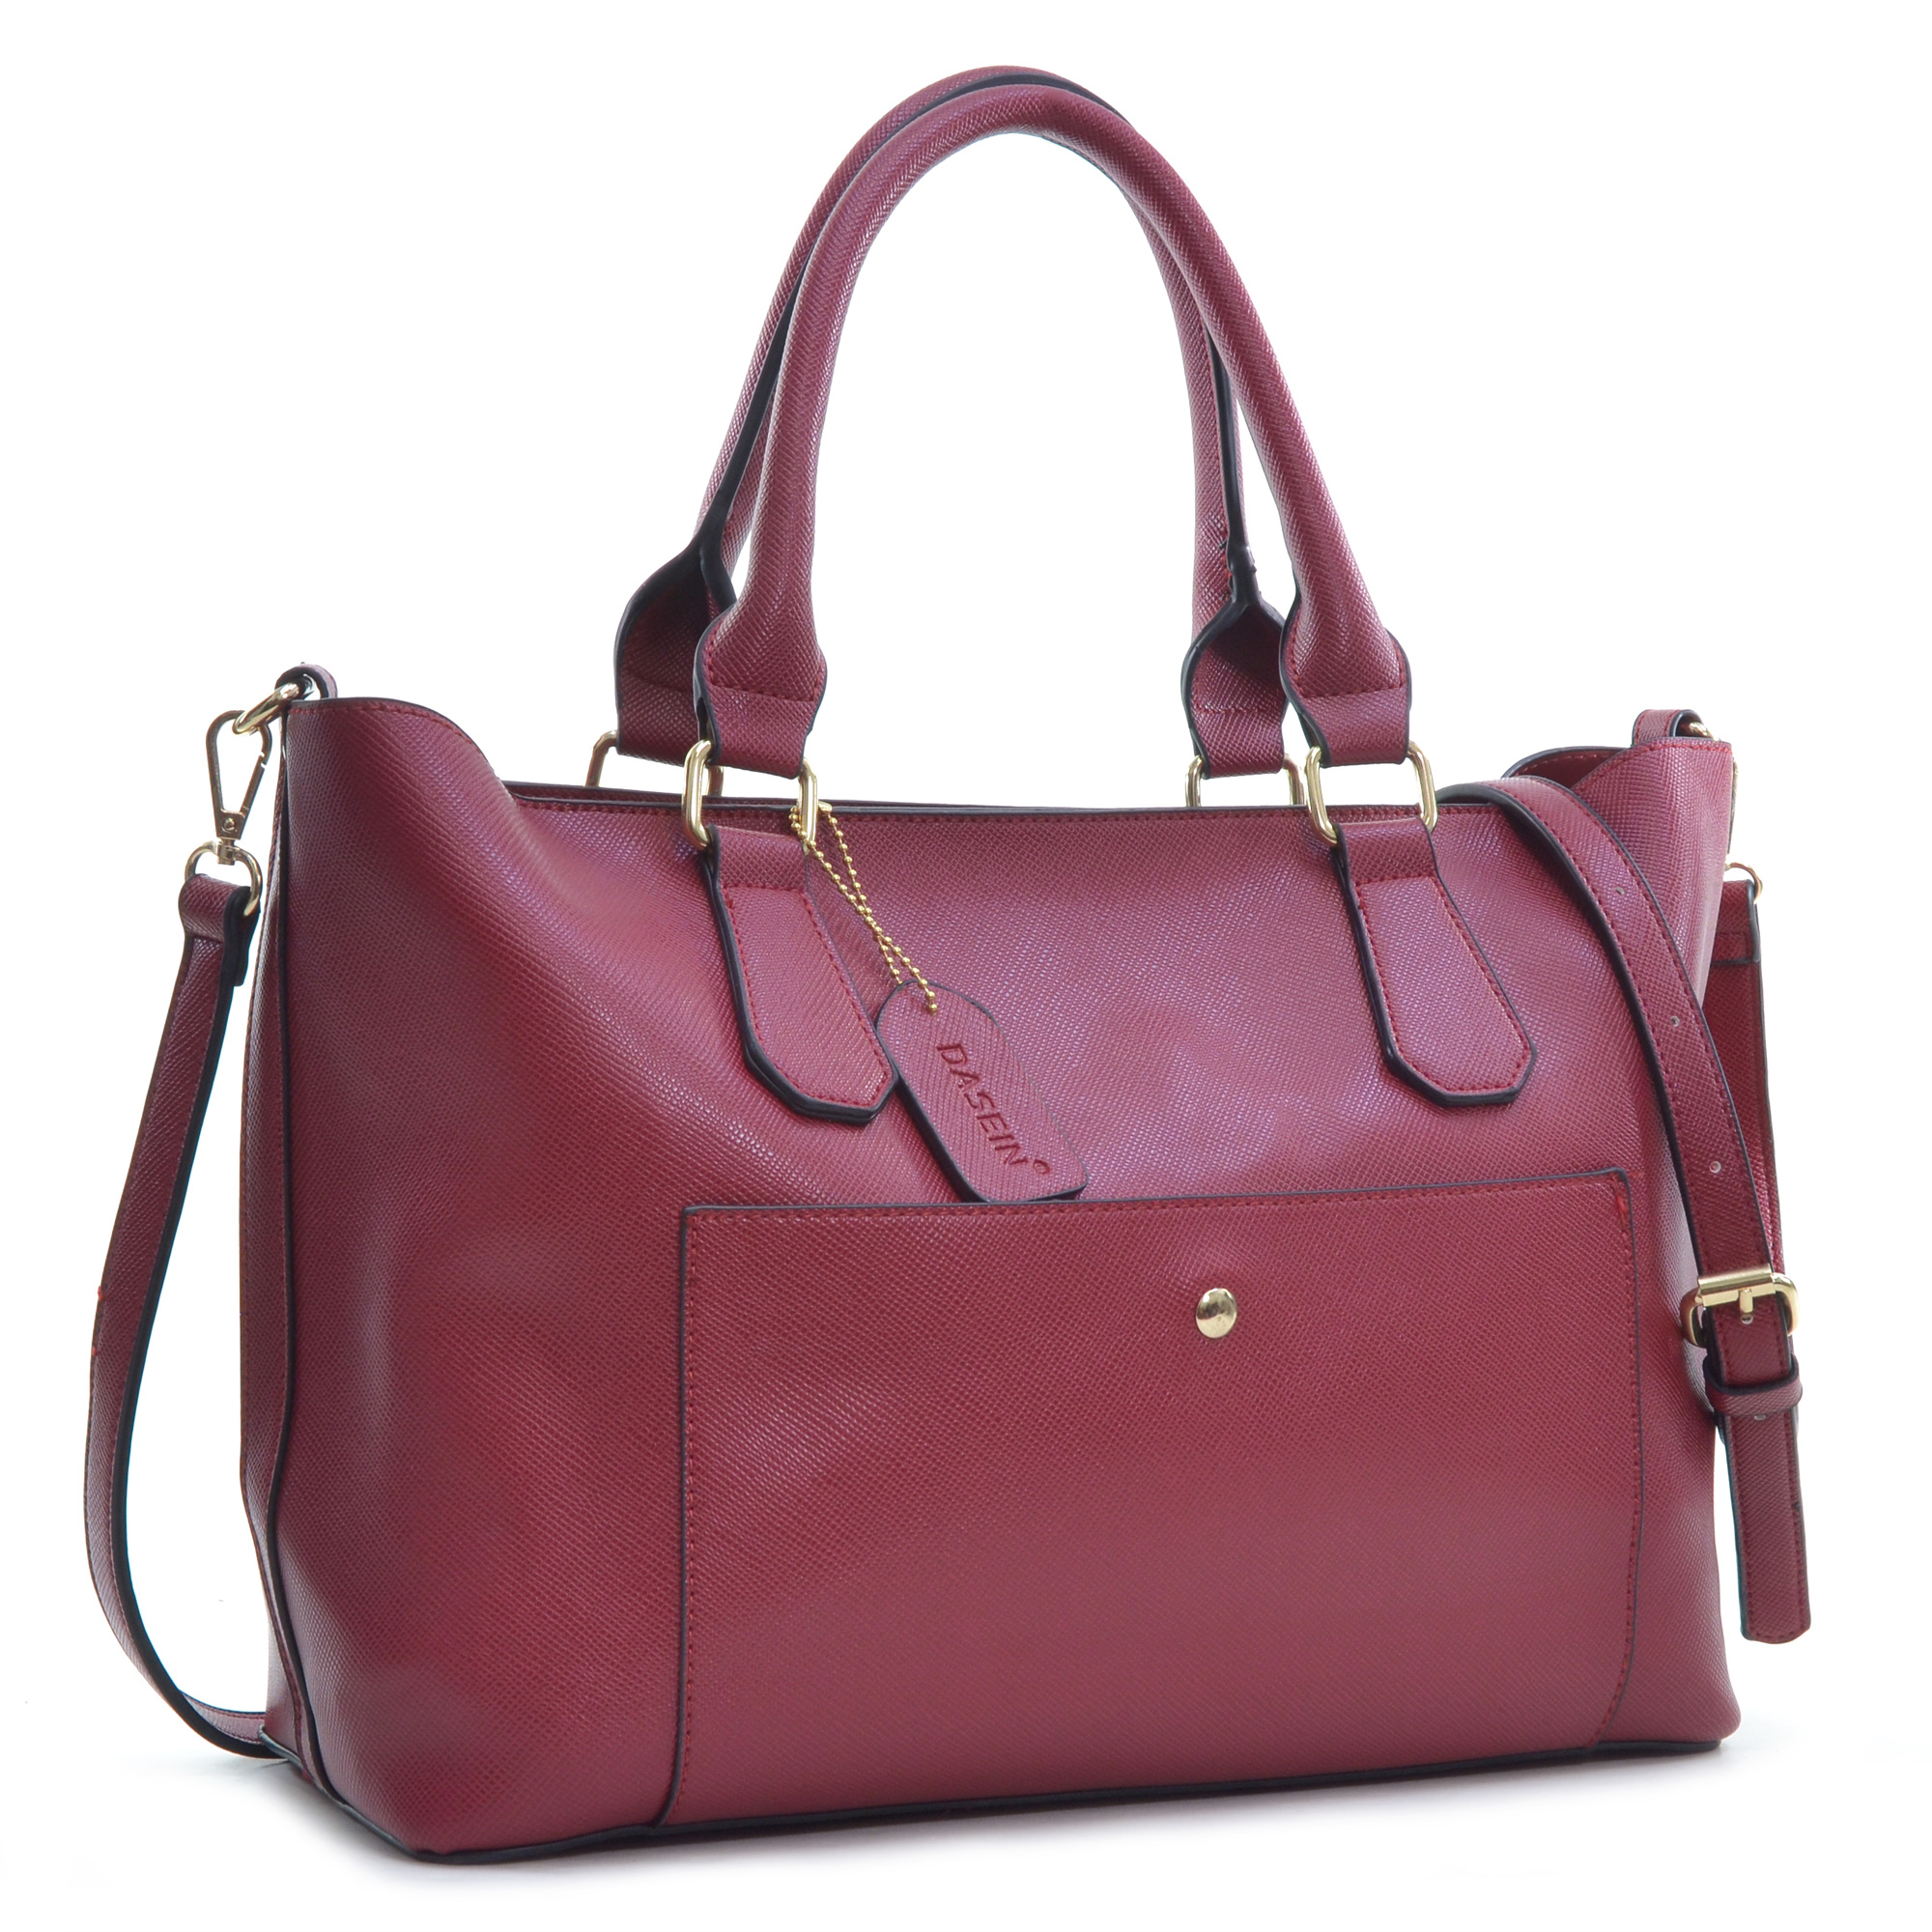 Dasein® 2-in-1 Saffiano Faux Leather Satchel with Front Snap Pocket